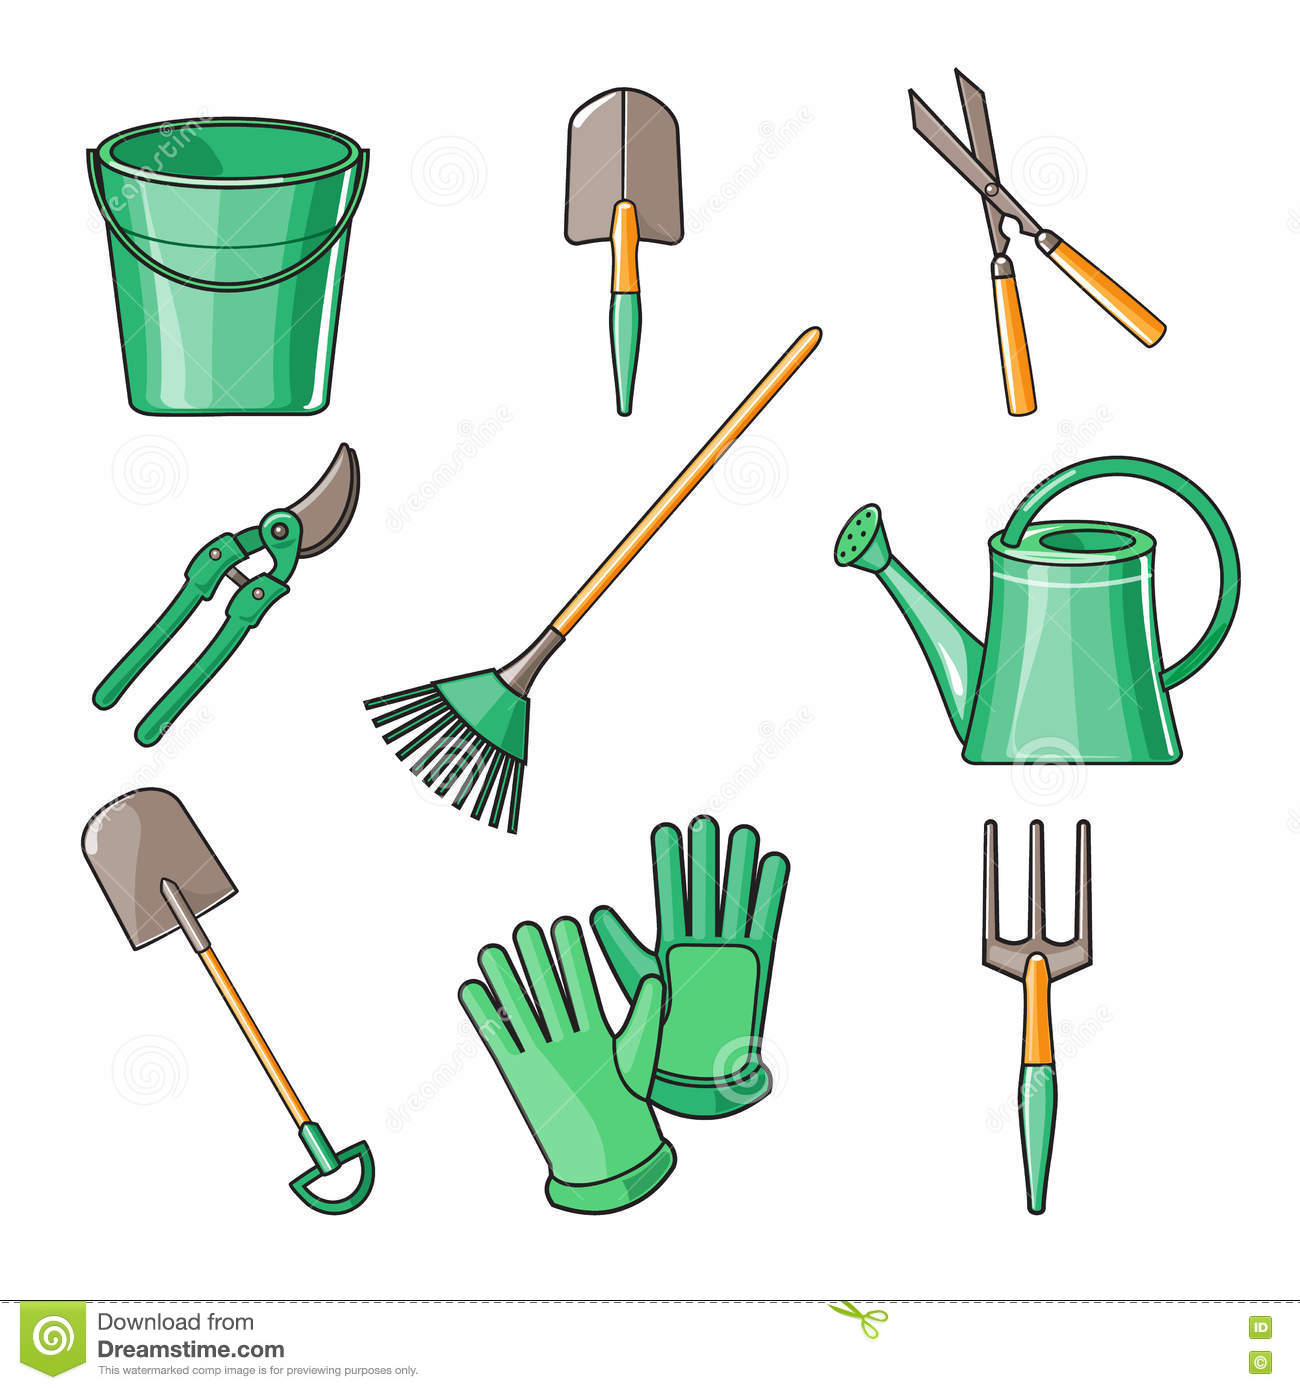 Garden Tools Flat Design Illustration Royalty Free Cartoon